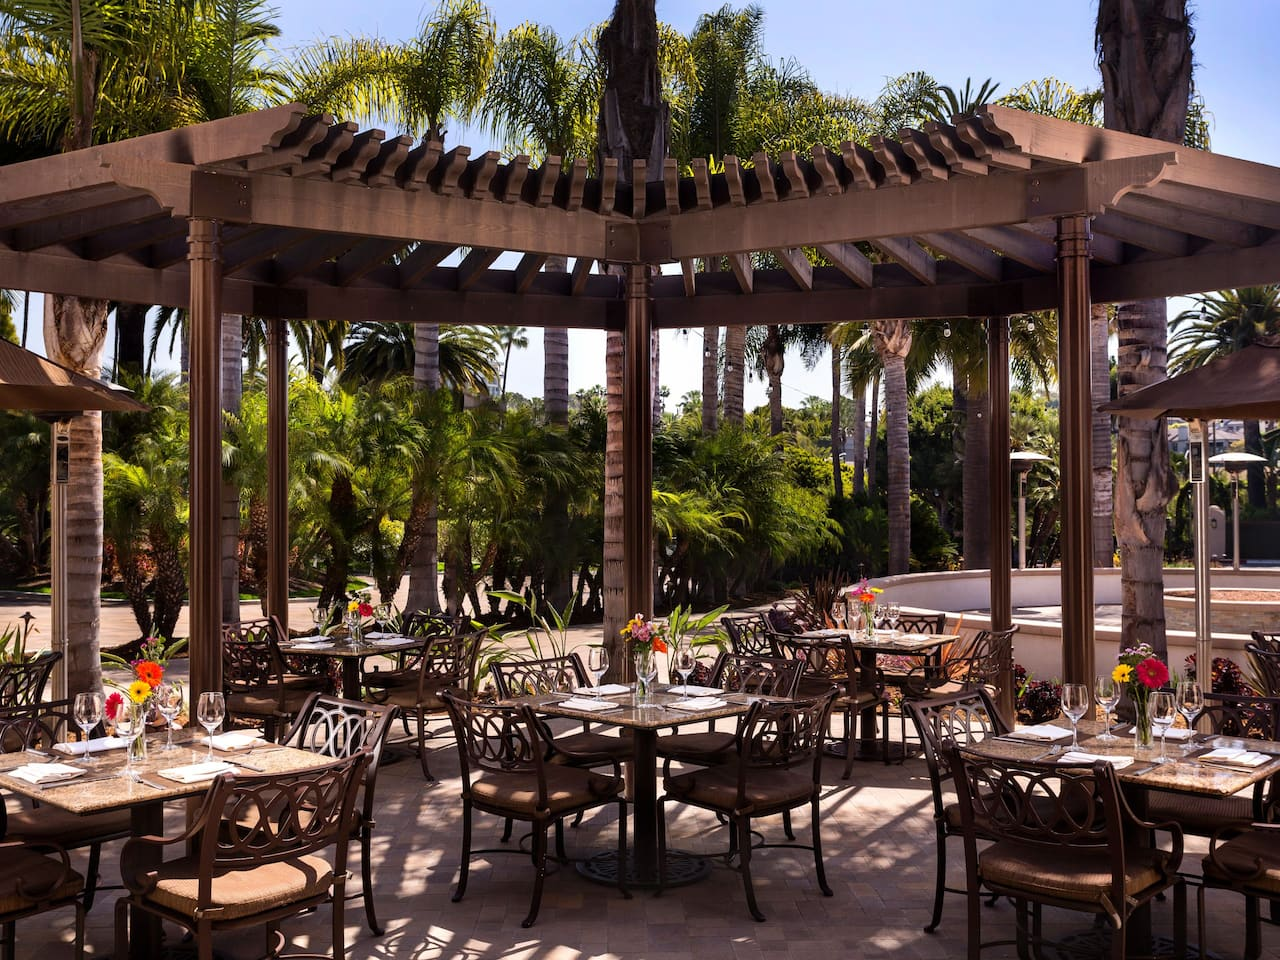 Hyatt Regency Newport Beach Outdoor Dining